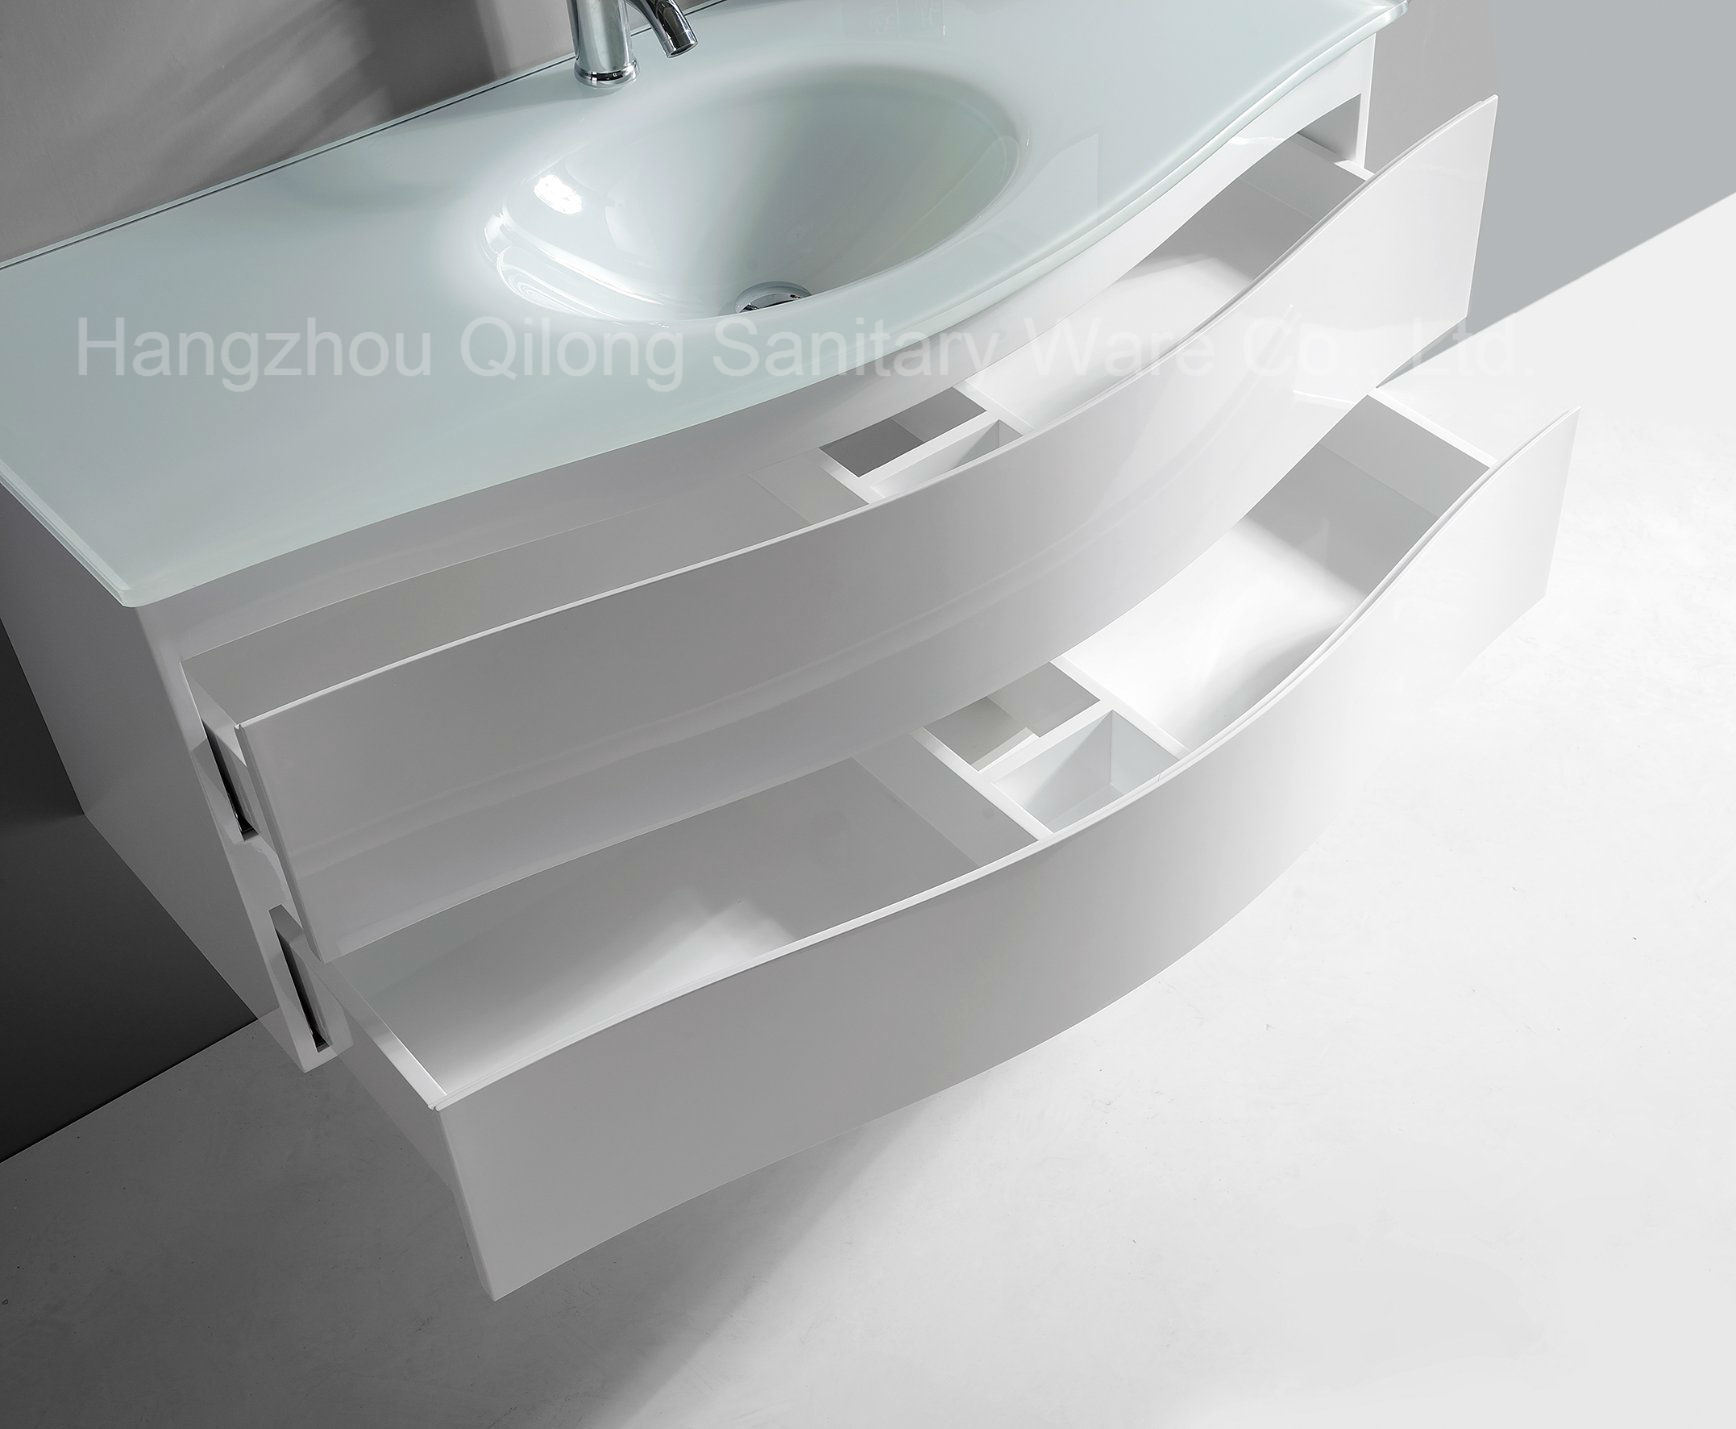 Soft Closing PVC Bathroom Cabinet with Glass Basin